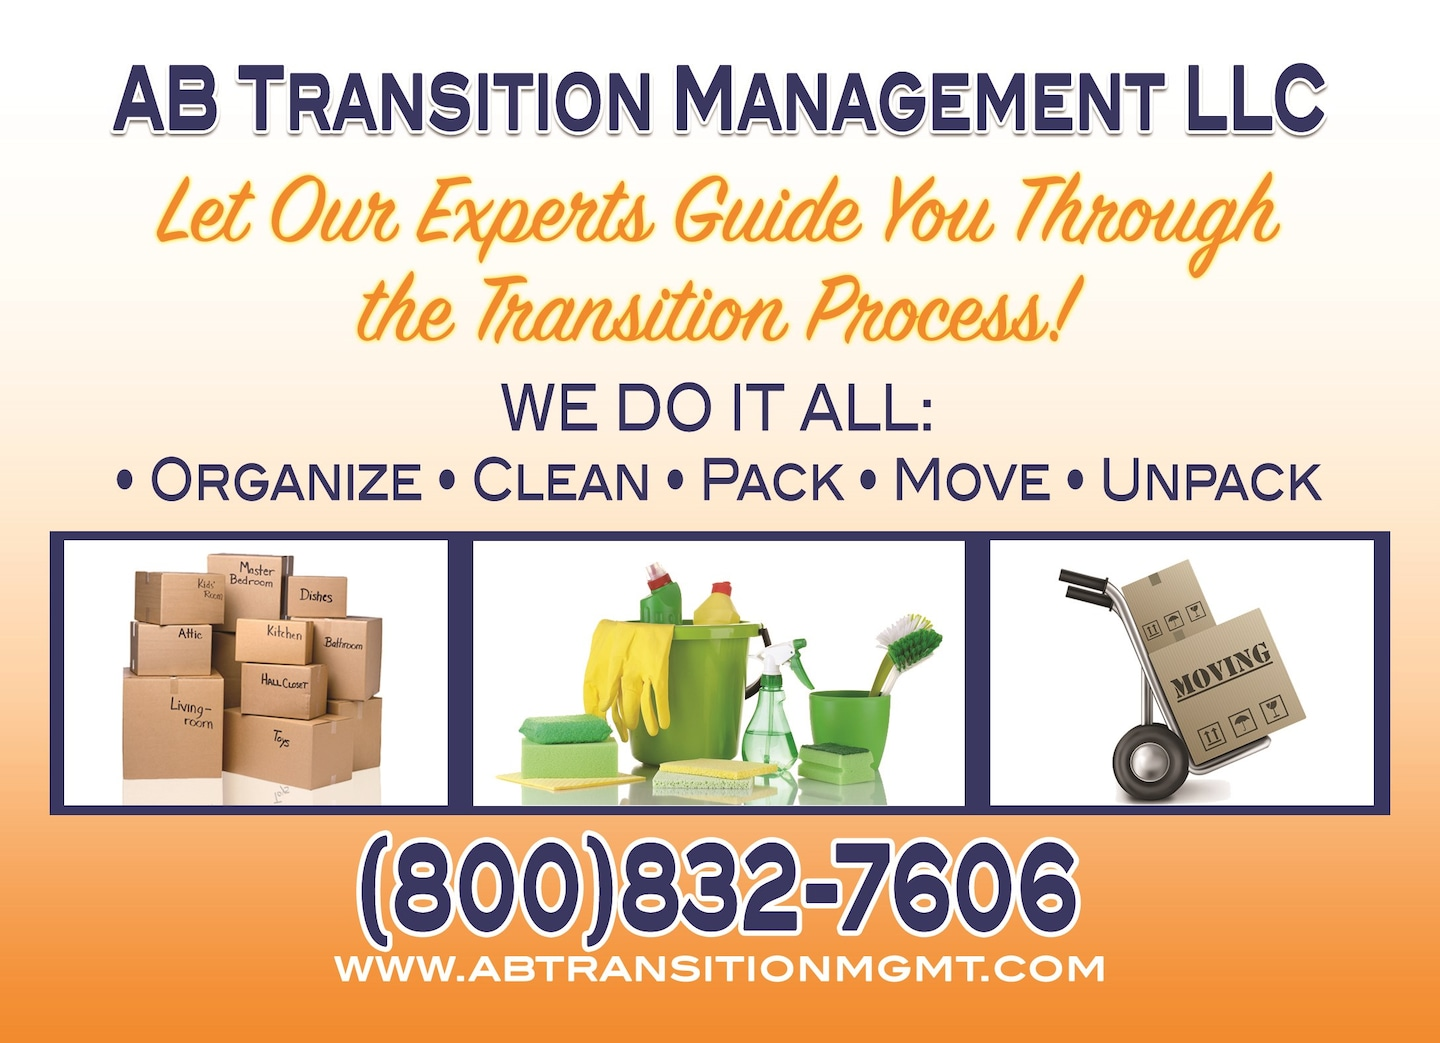 AB Transition Management